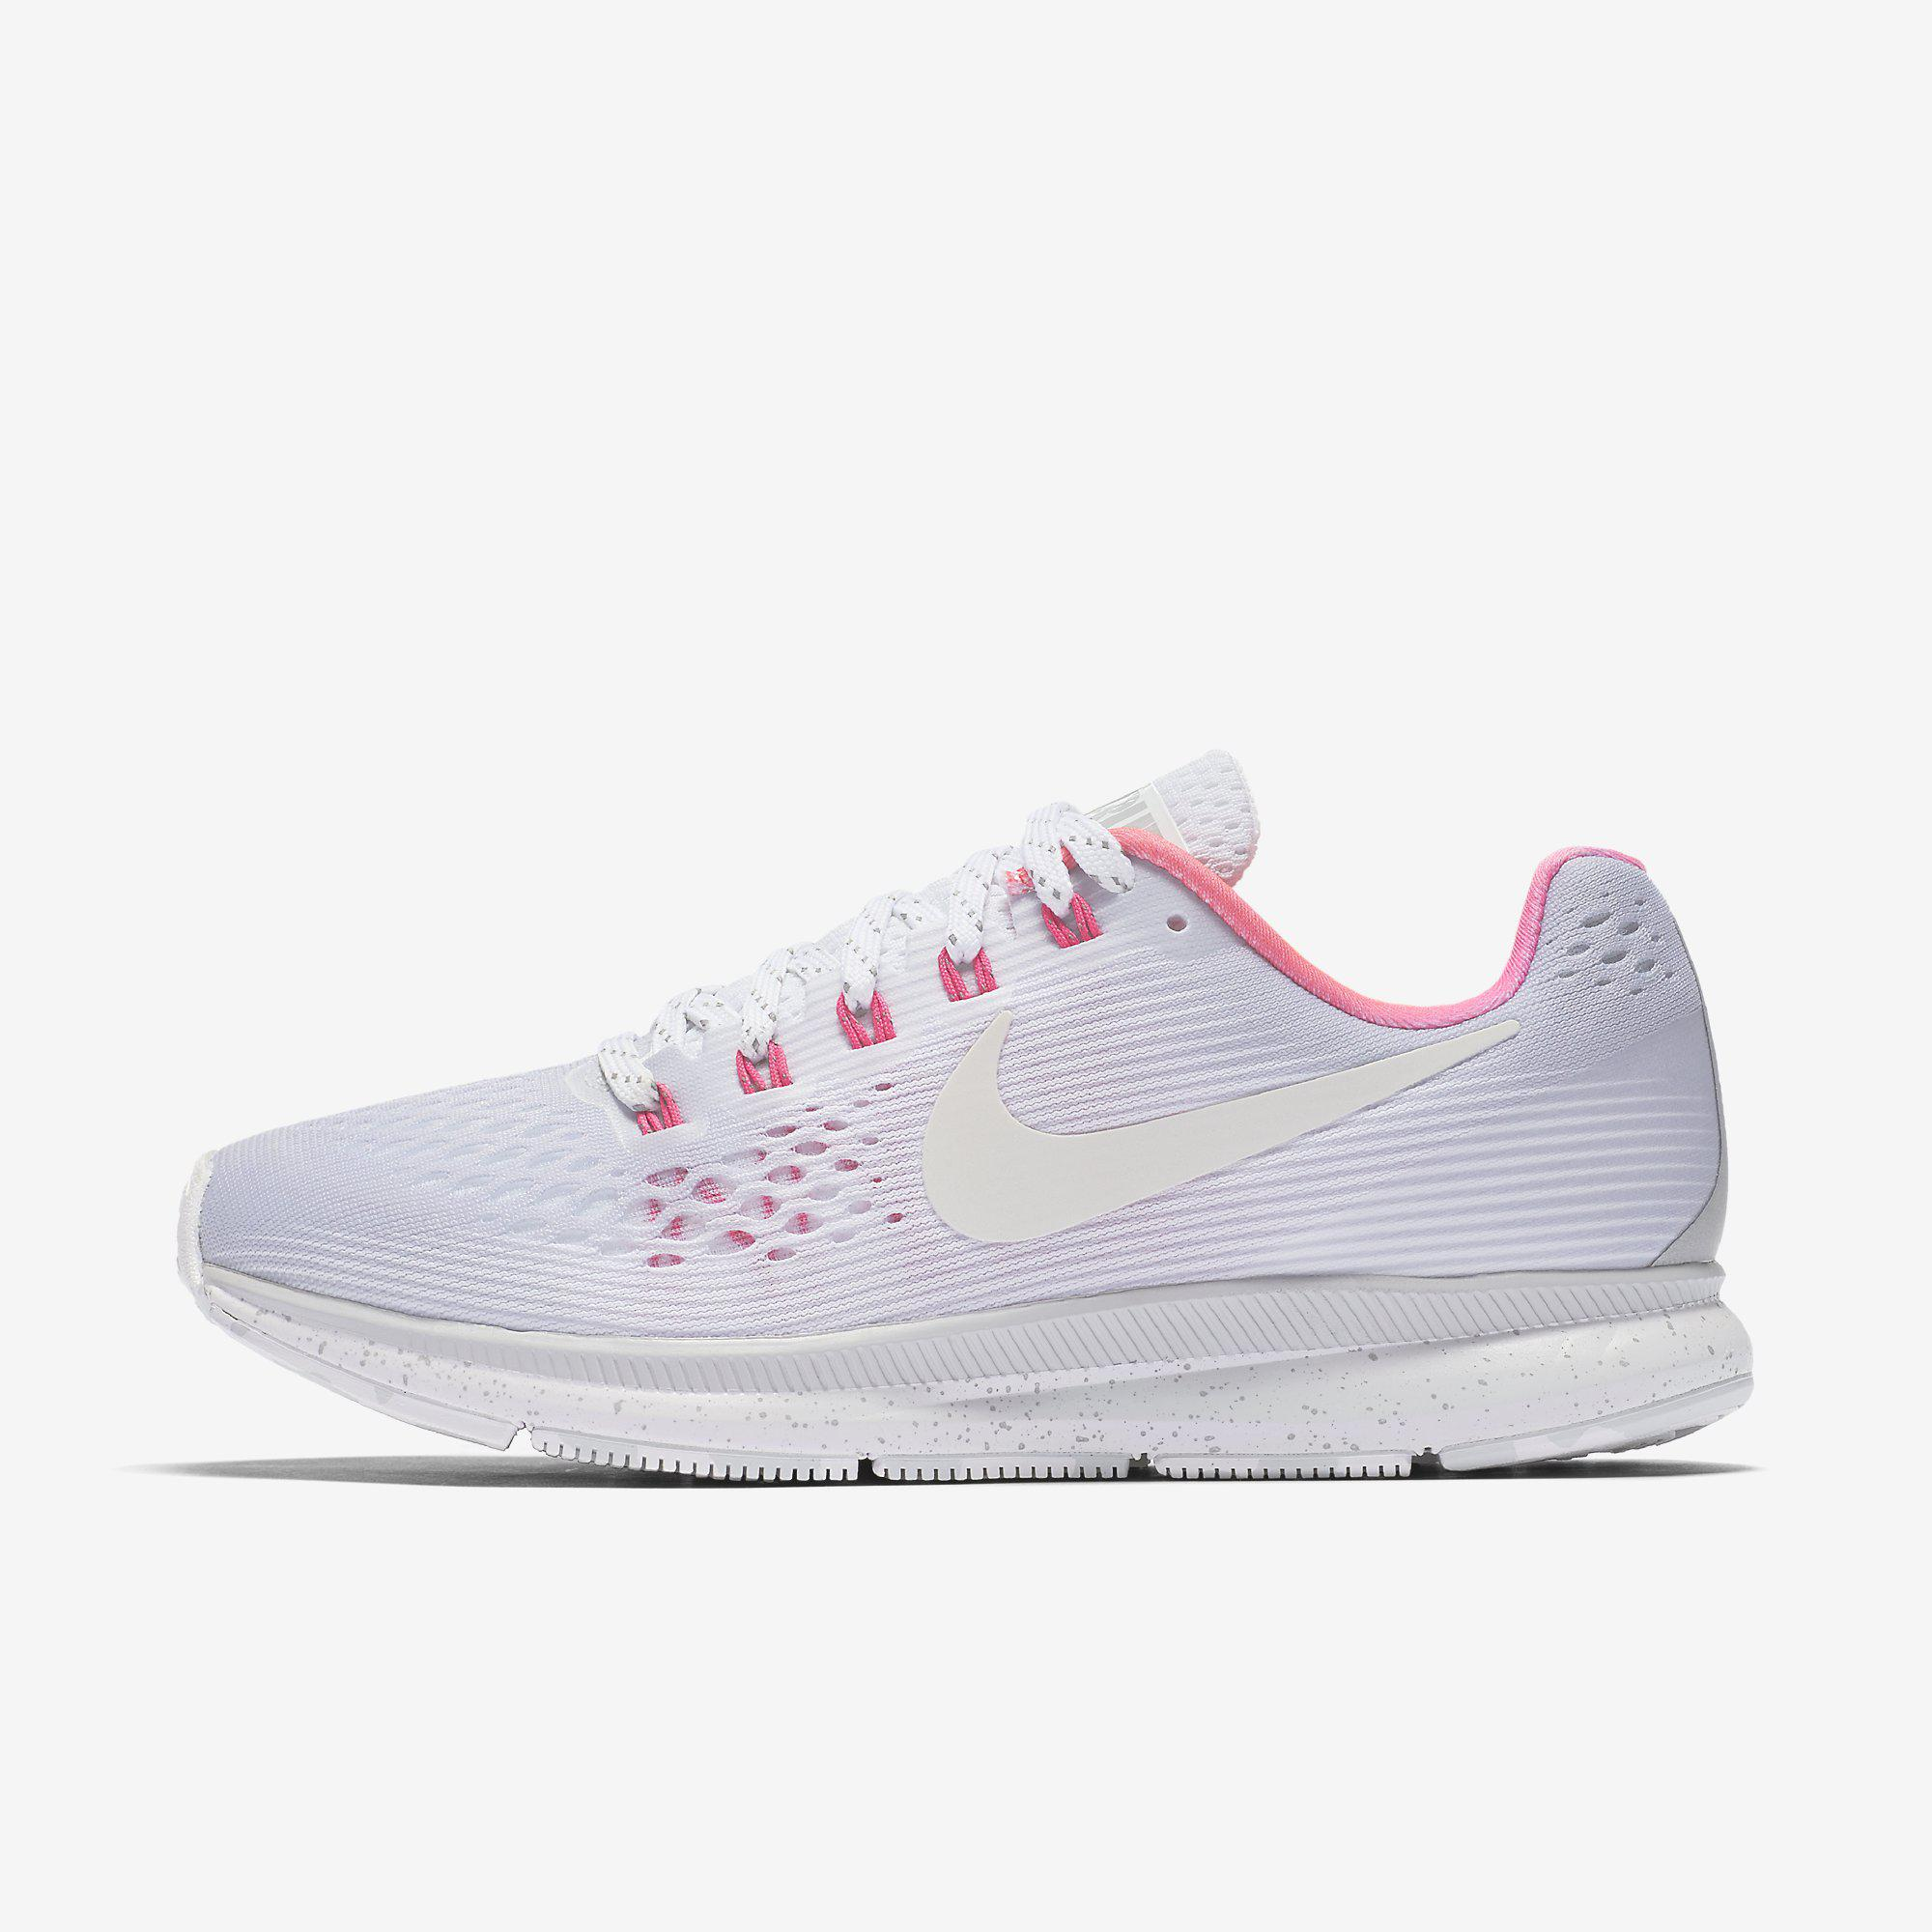 c53962a64f55 Nike Womens Air Zoom Pegasus 34 Betrue Running Shoes - Wolf Grey -  Tennisnuts.com